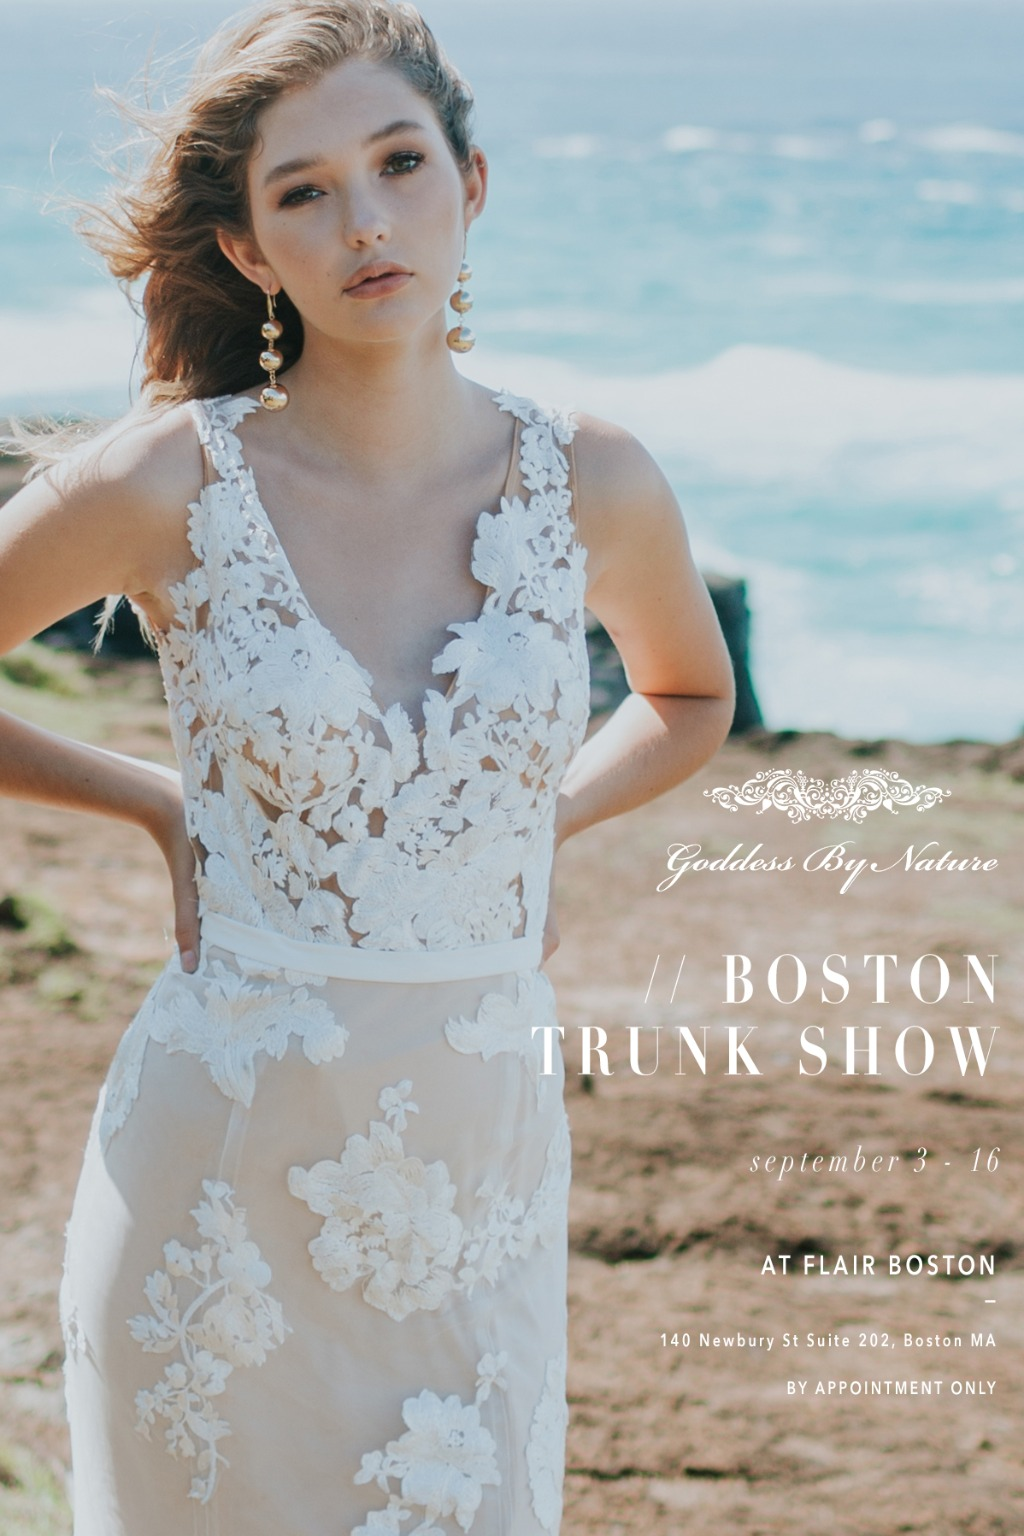 GODDESS BY NATURE TRUNK SHOW AT FLAIR BOSTON